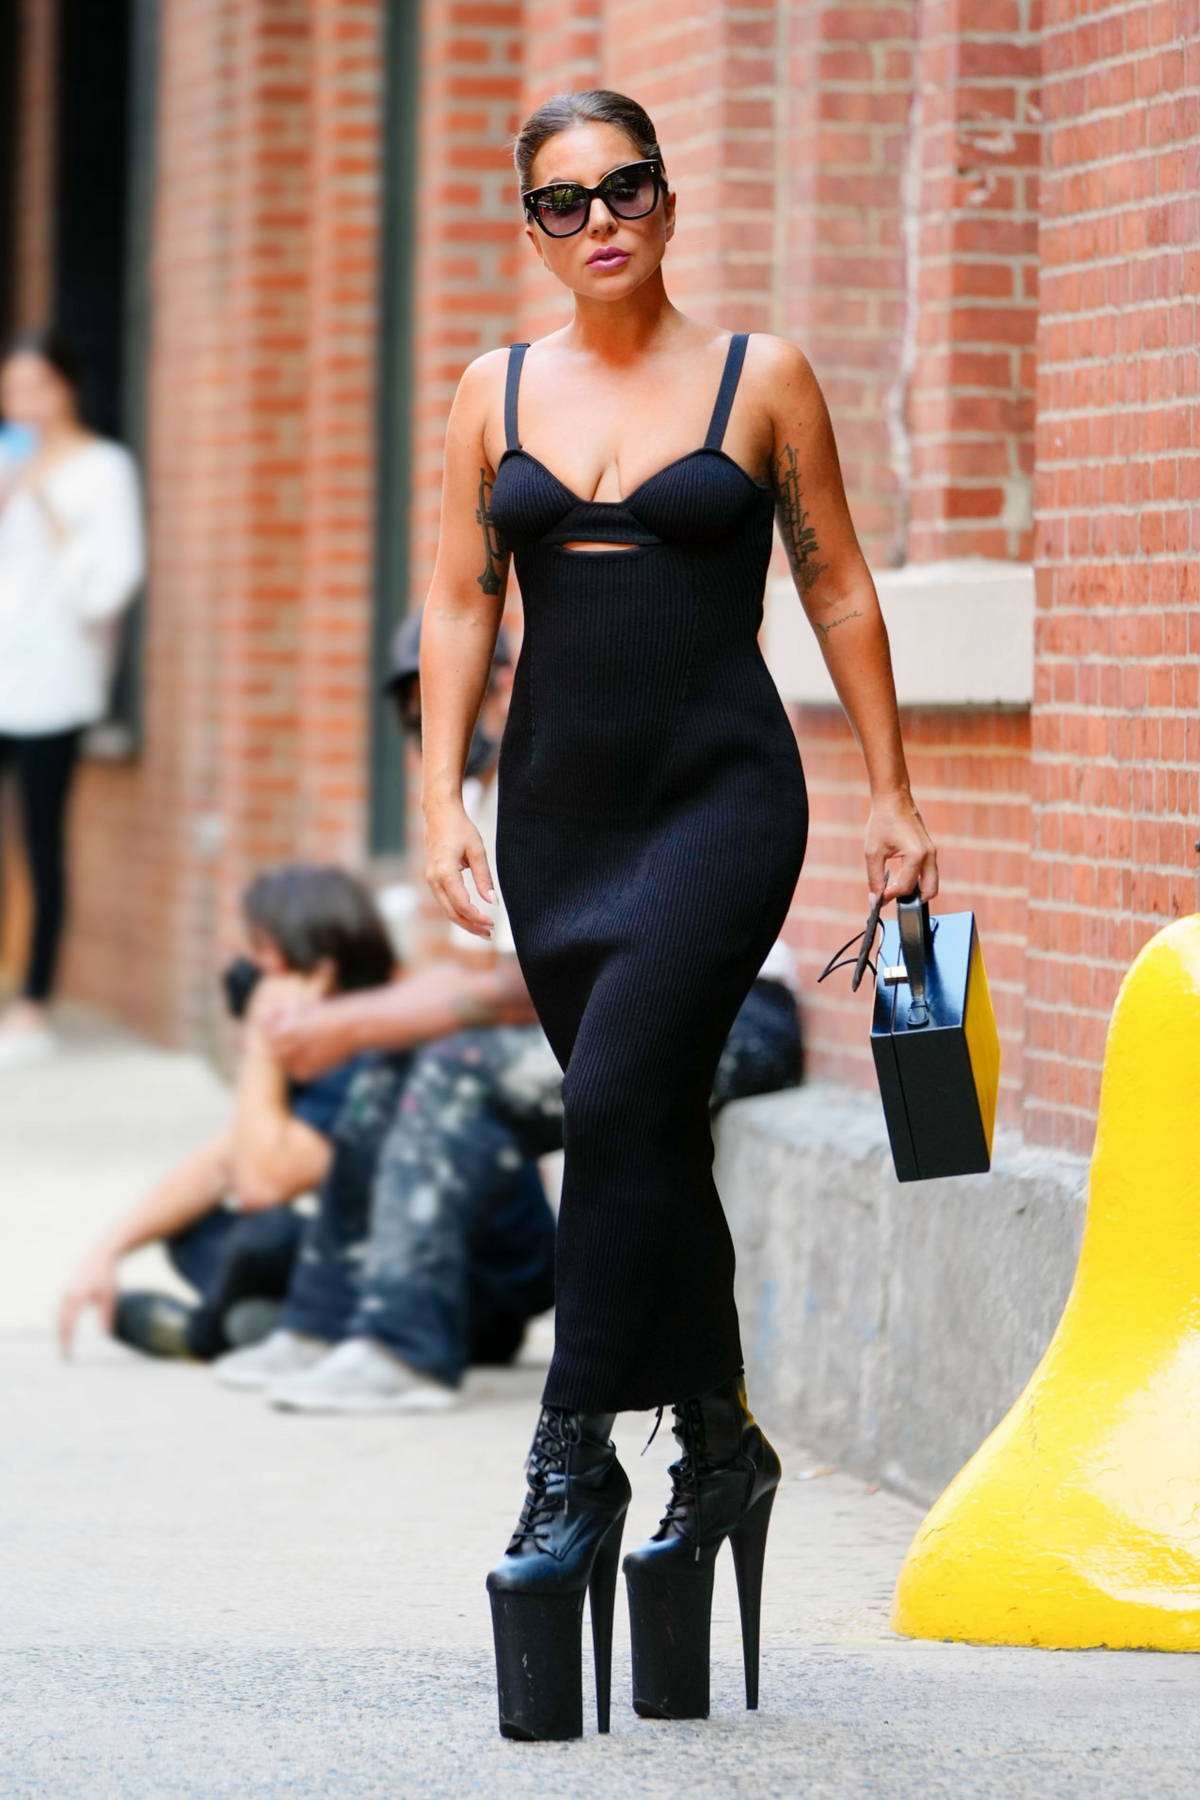 Lady Gaga rocks a pair of super high heels with a black dress as she leaves a studio in New York City